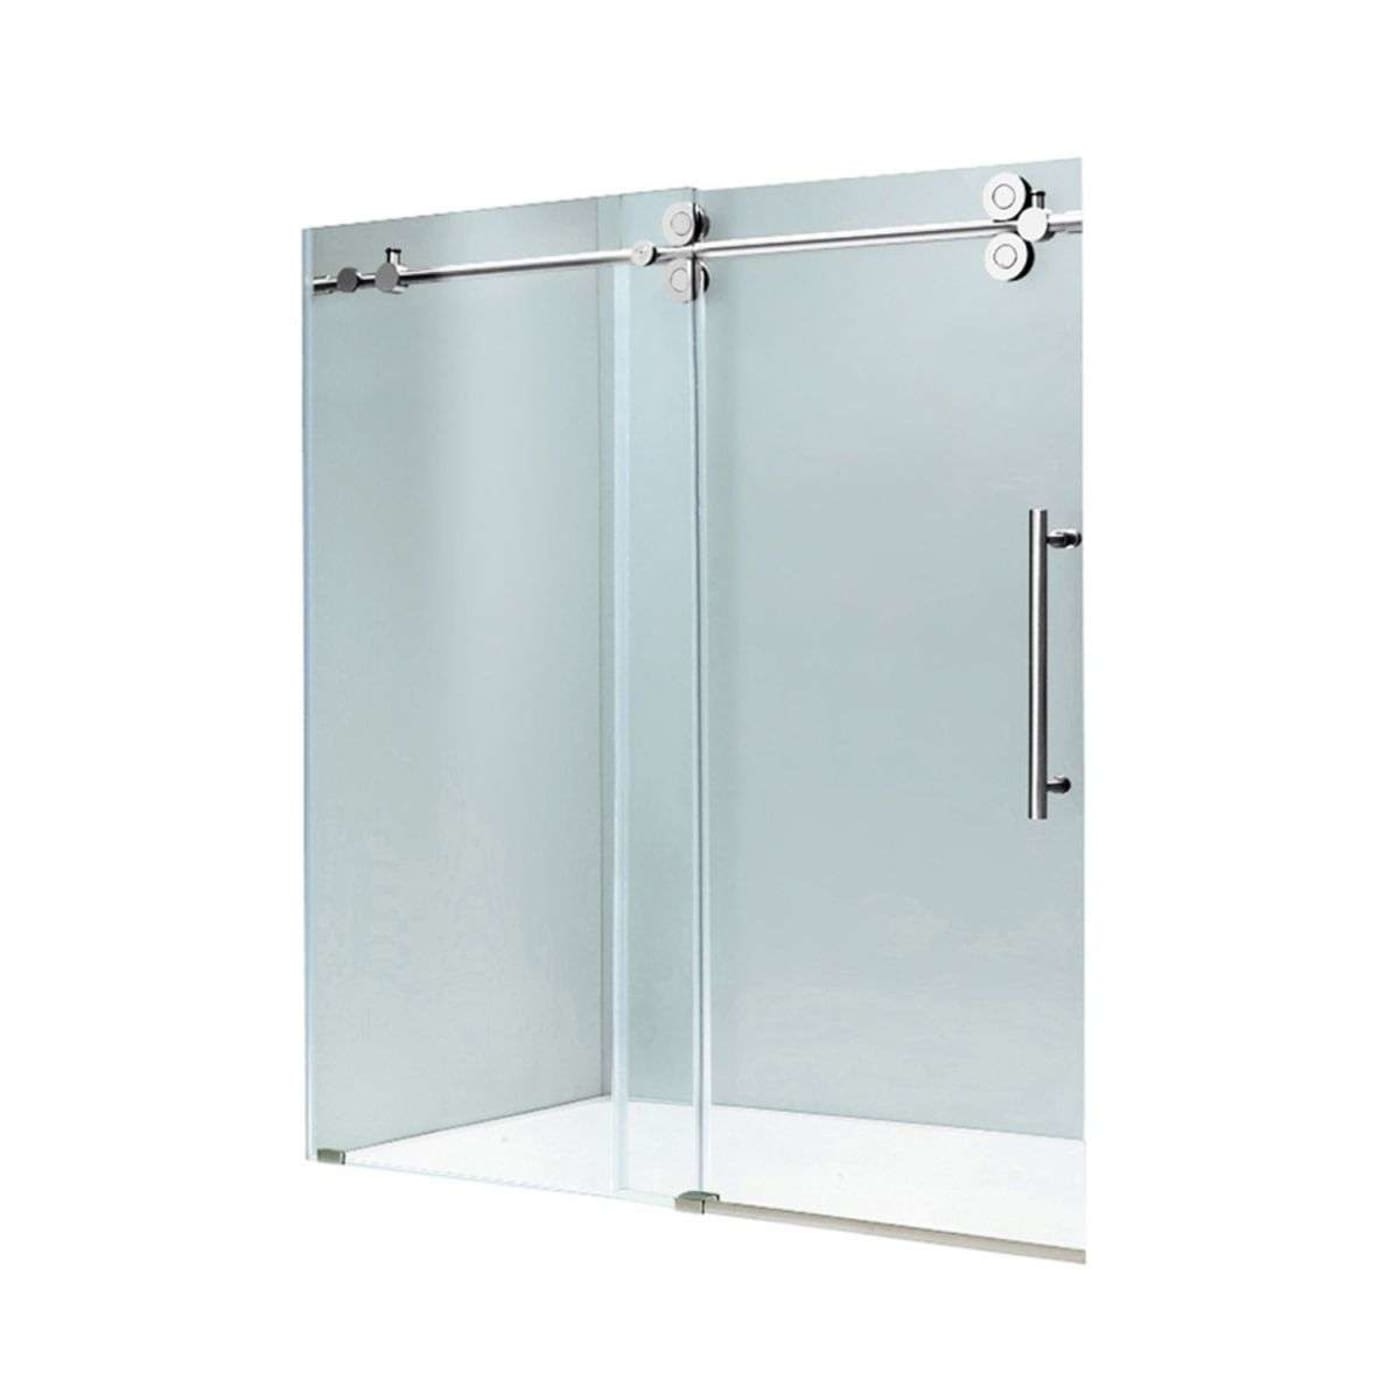 of clear best size reviews service bathtub parts doors dreamline shower sliding full customer glass tub door inch vs frameless replacement vigo